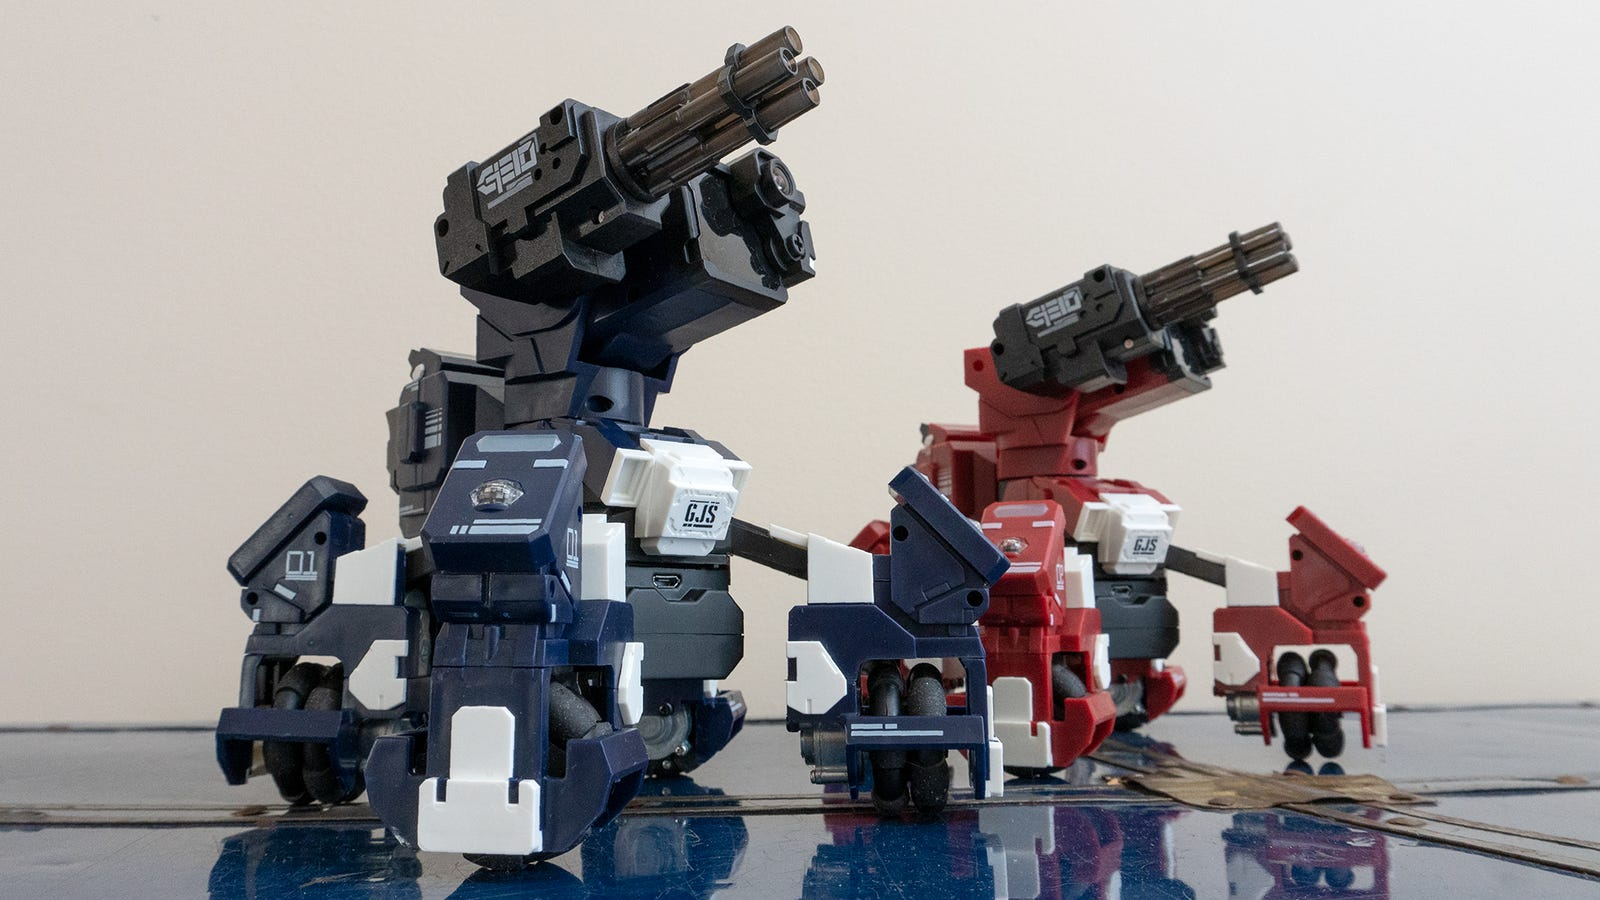 There are currently two versions of the Geio robot, distinguished by a red or blue color scheme.